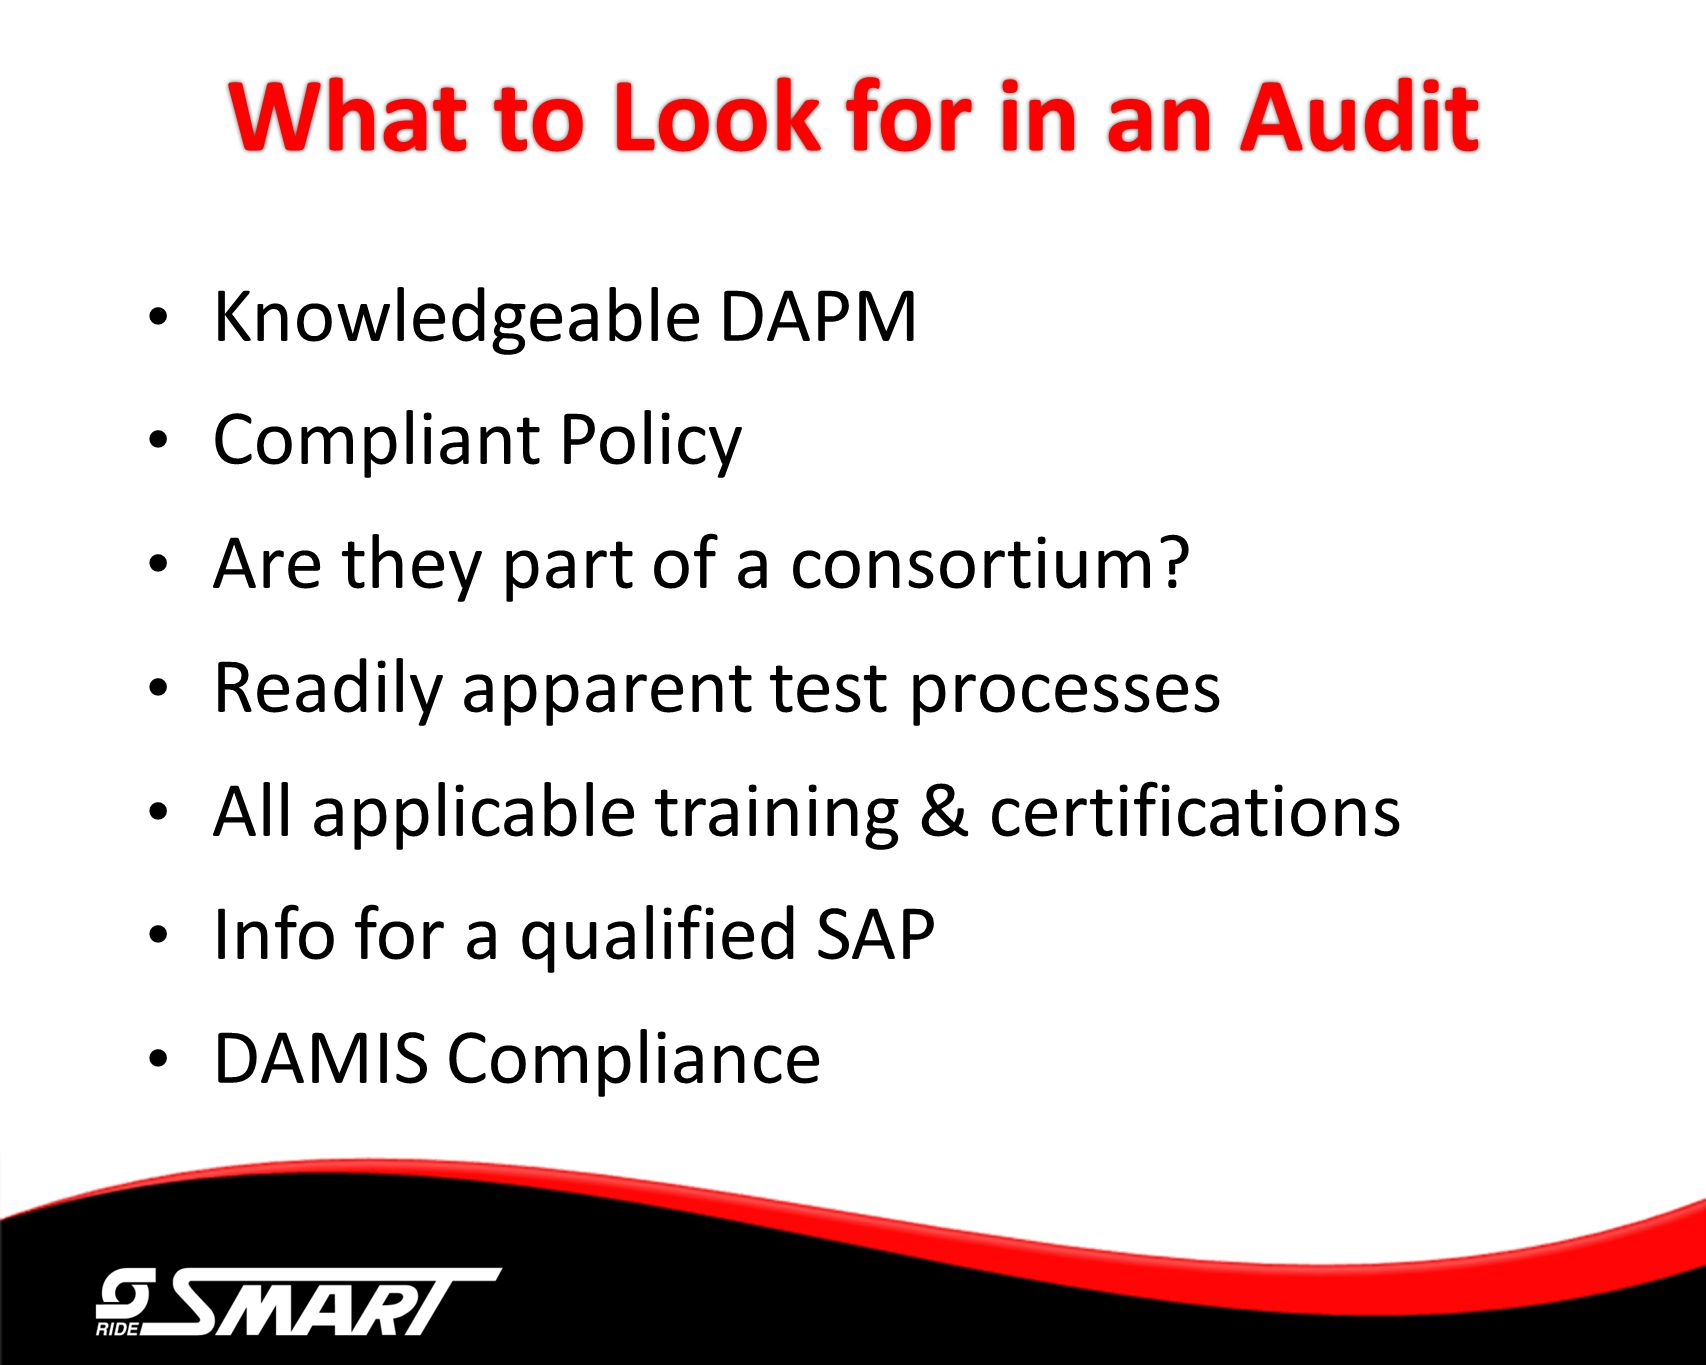 What to Look for in an Audit